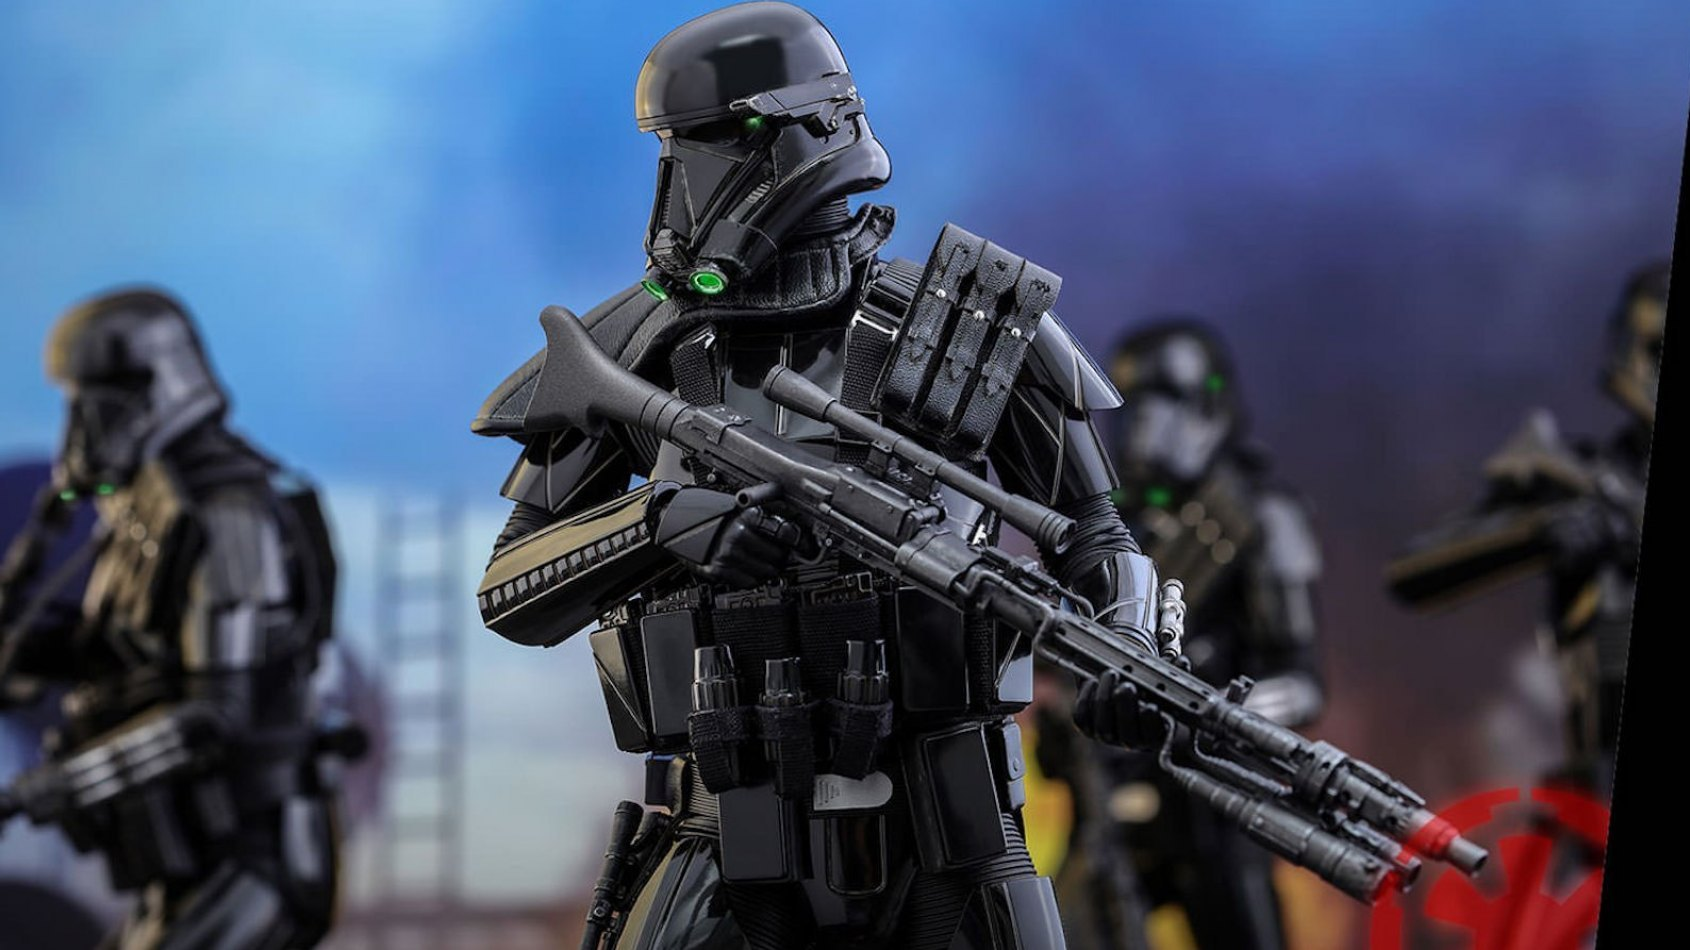 Hot Toys Sixth Scale Figures: Death Trooper